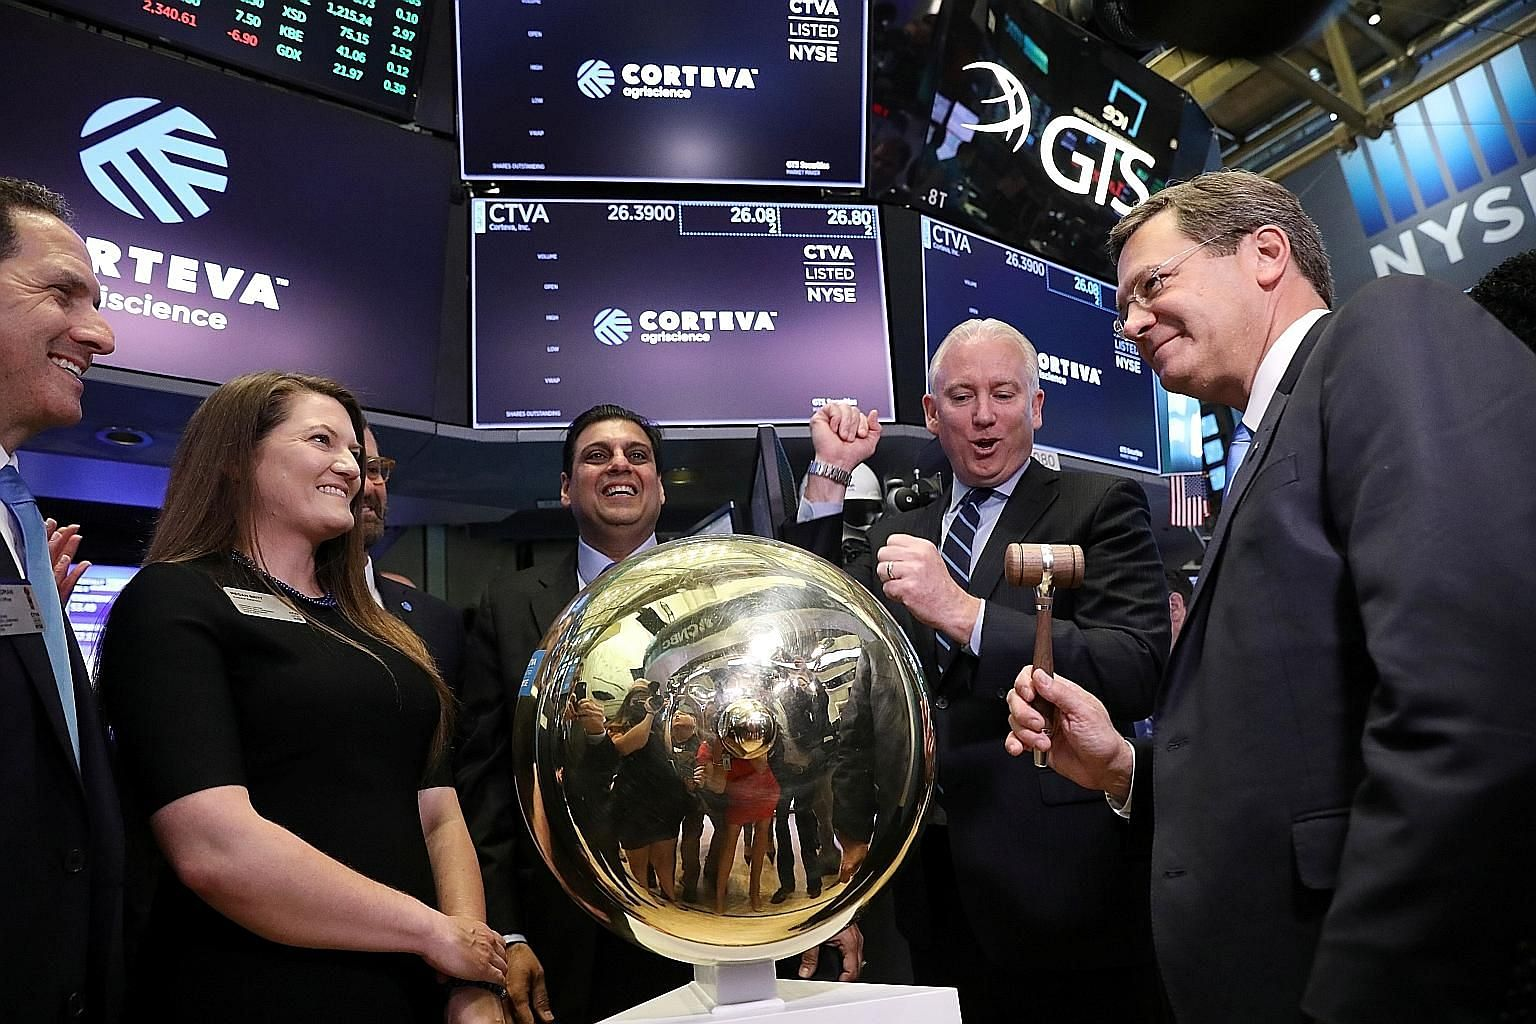 Corteva Agriscience chief executive Jim Collins (right) ringing a ceremonial bell to begin trading on the floor of the New York Stock Exchange on Monday. PHOTO: REUTERS